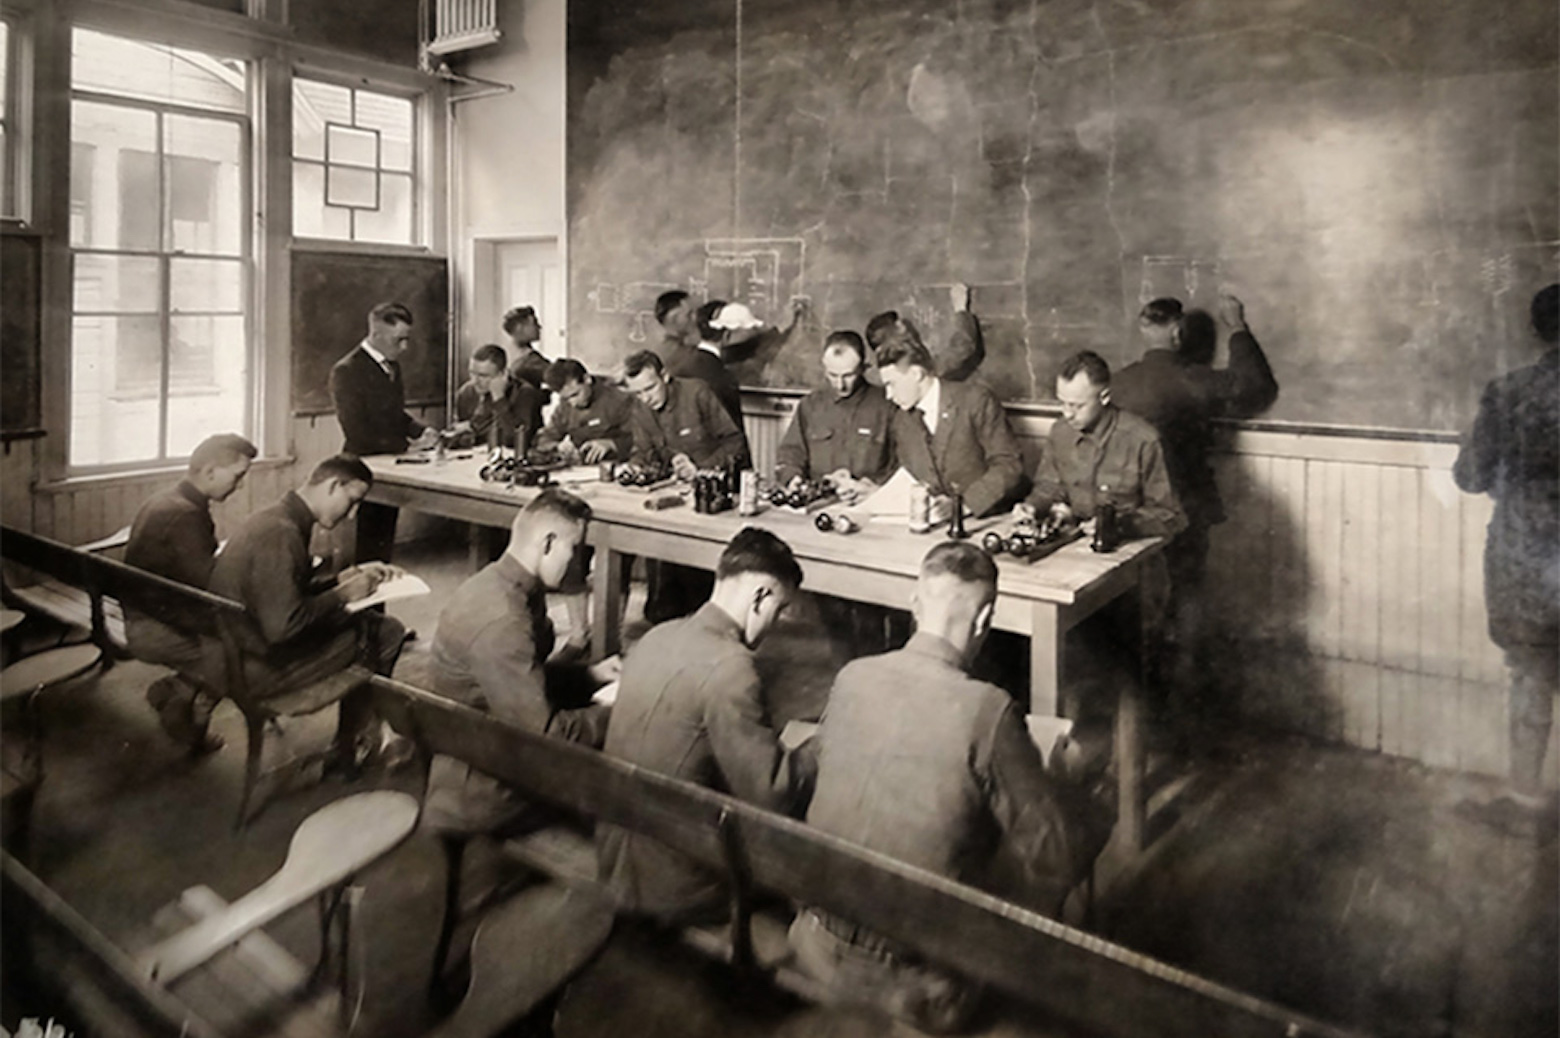 men in a classroom